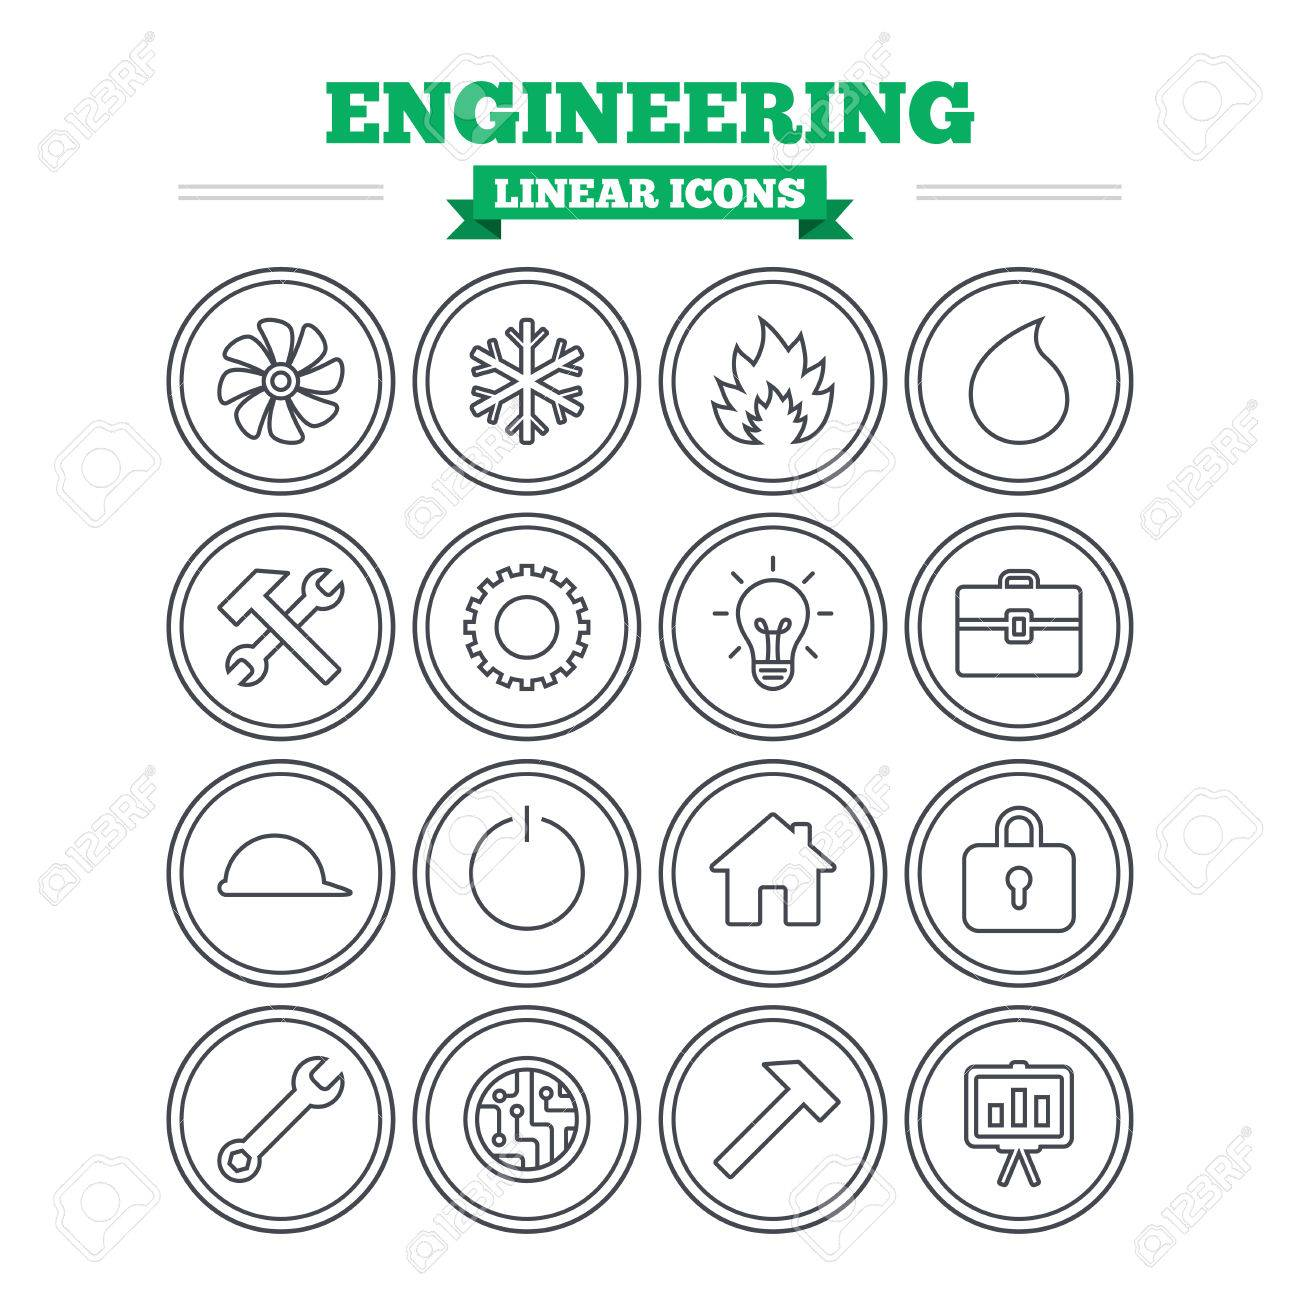 Engineering Linear Icons Set Ventilation Heat And Air Conditioning